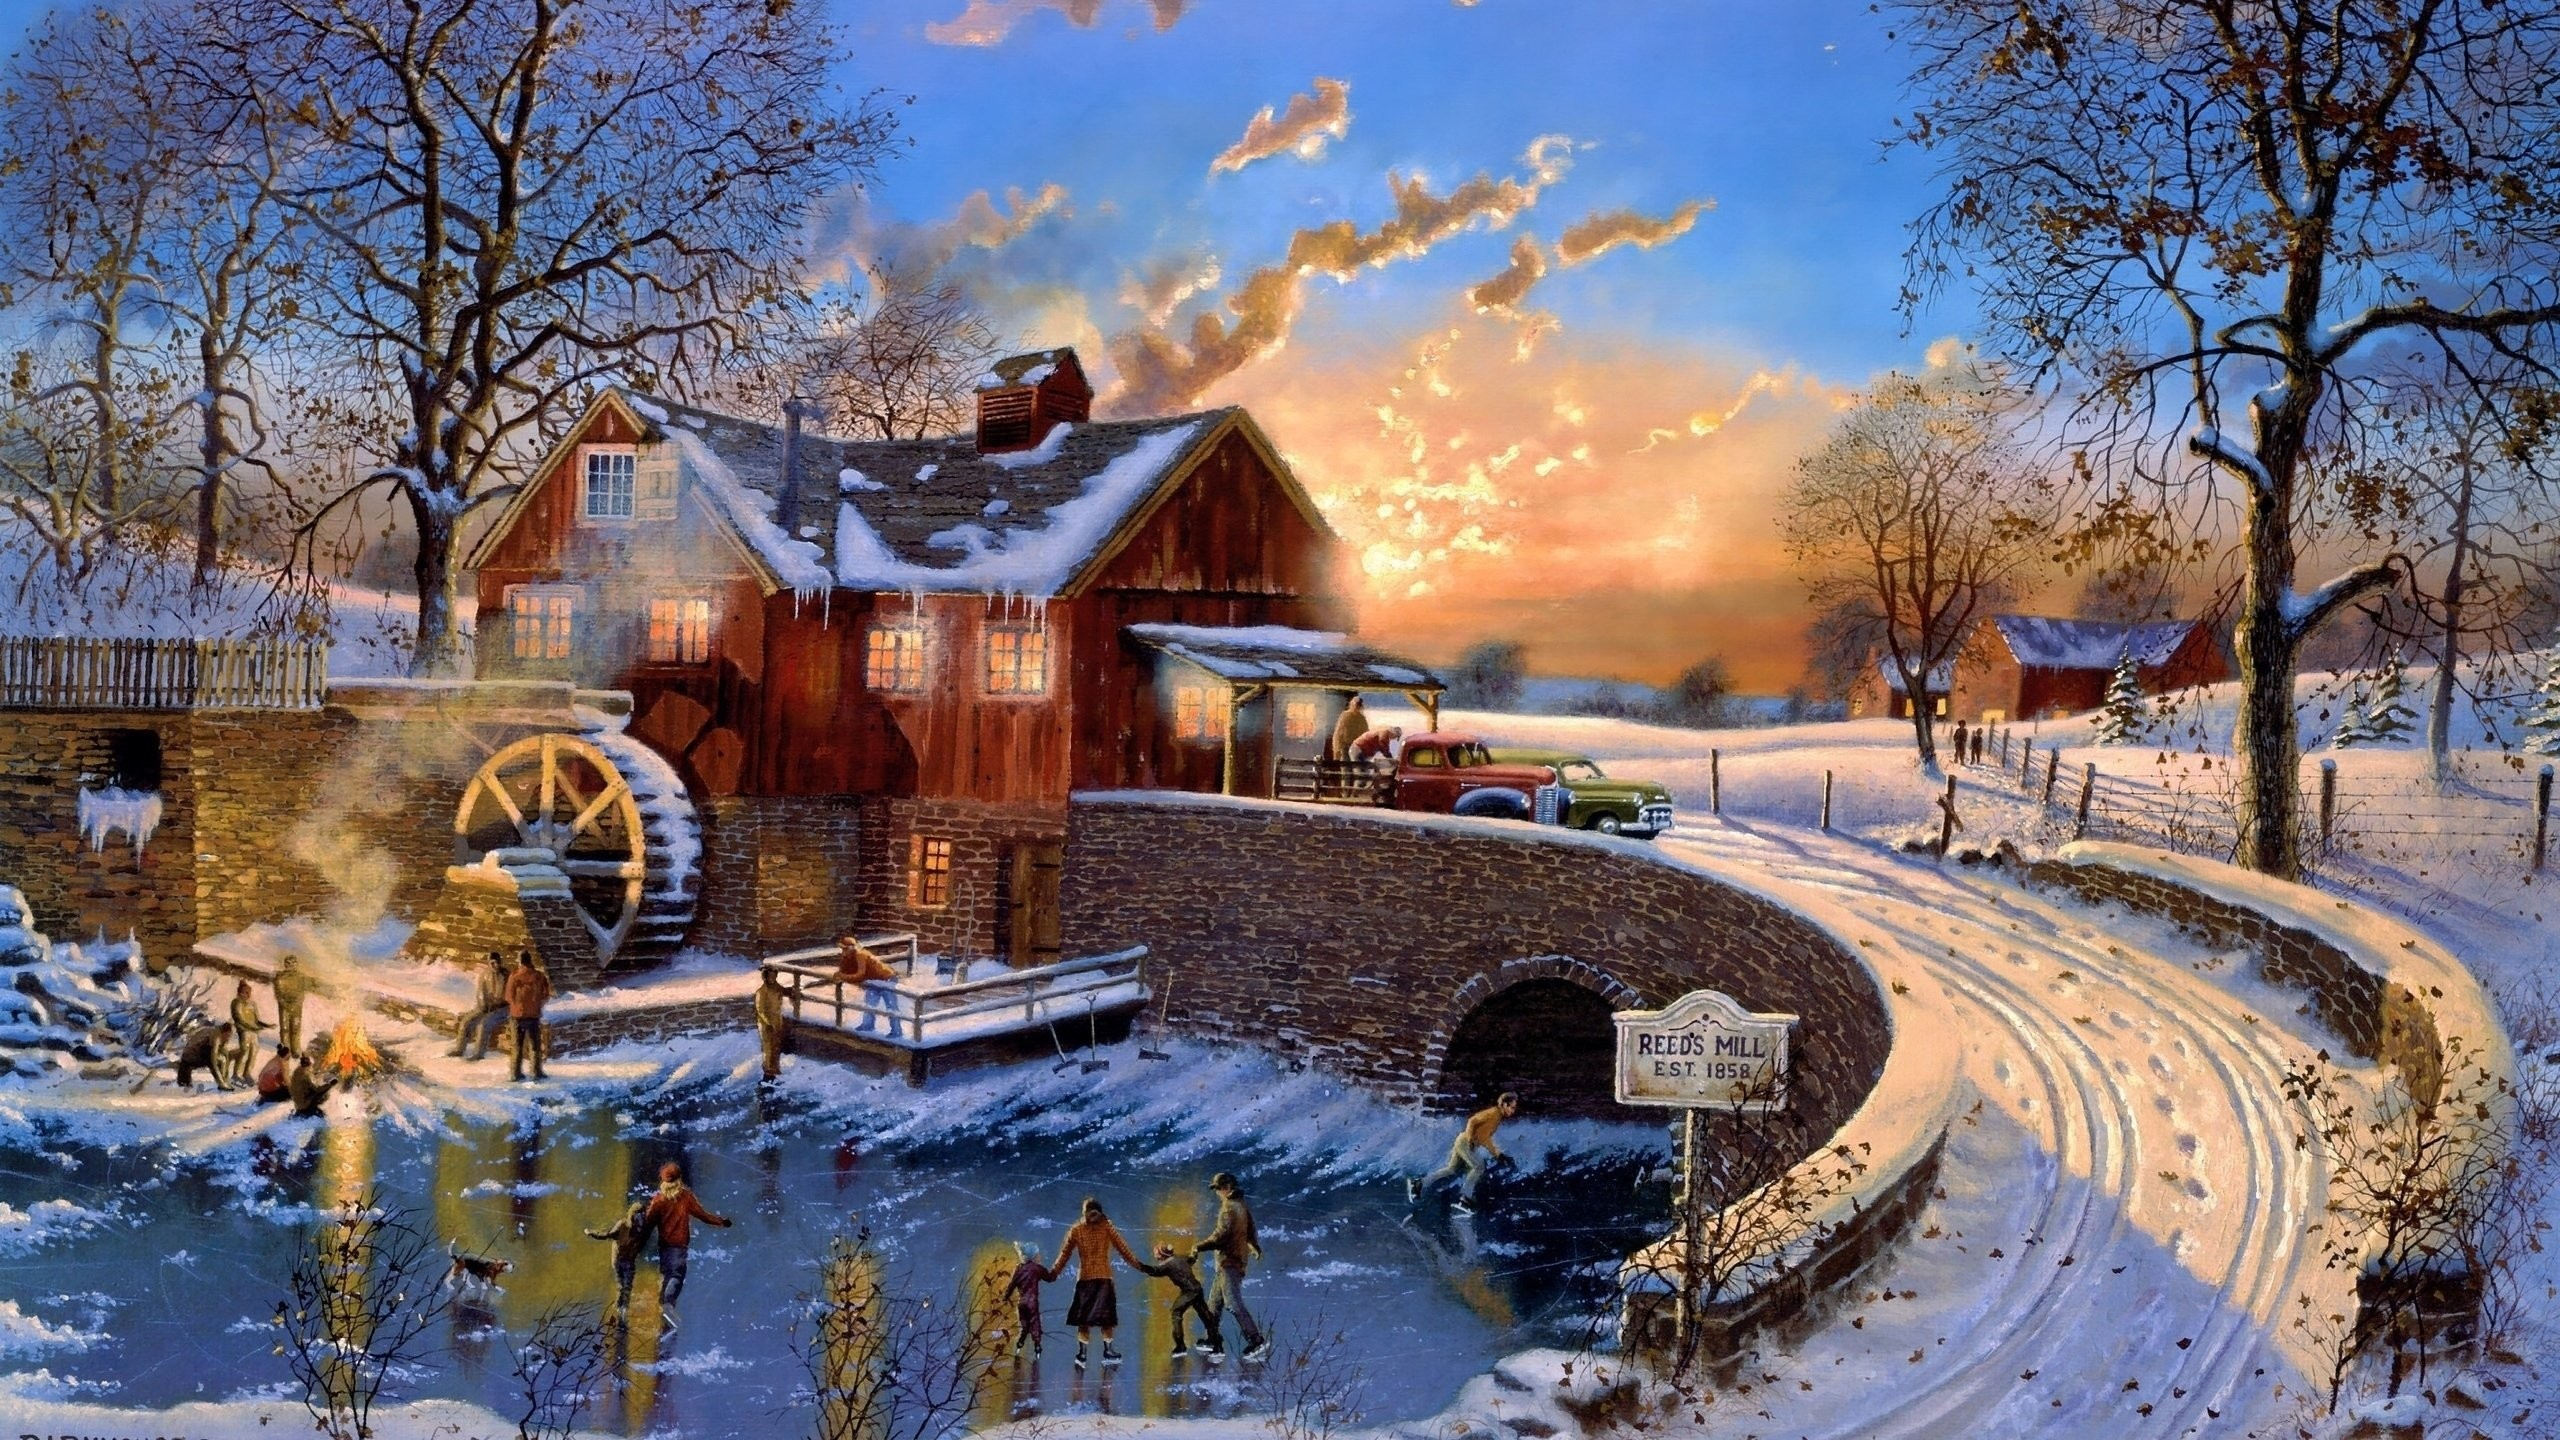 Christmas village backgrounds 52 images - Art village wallpaper ...